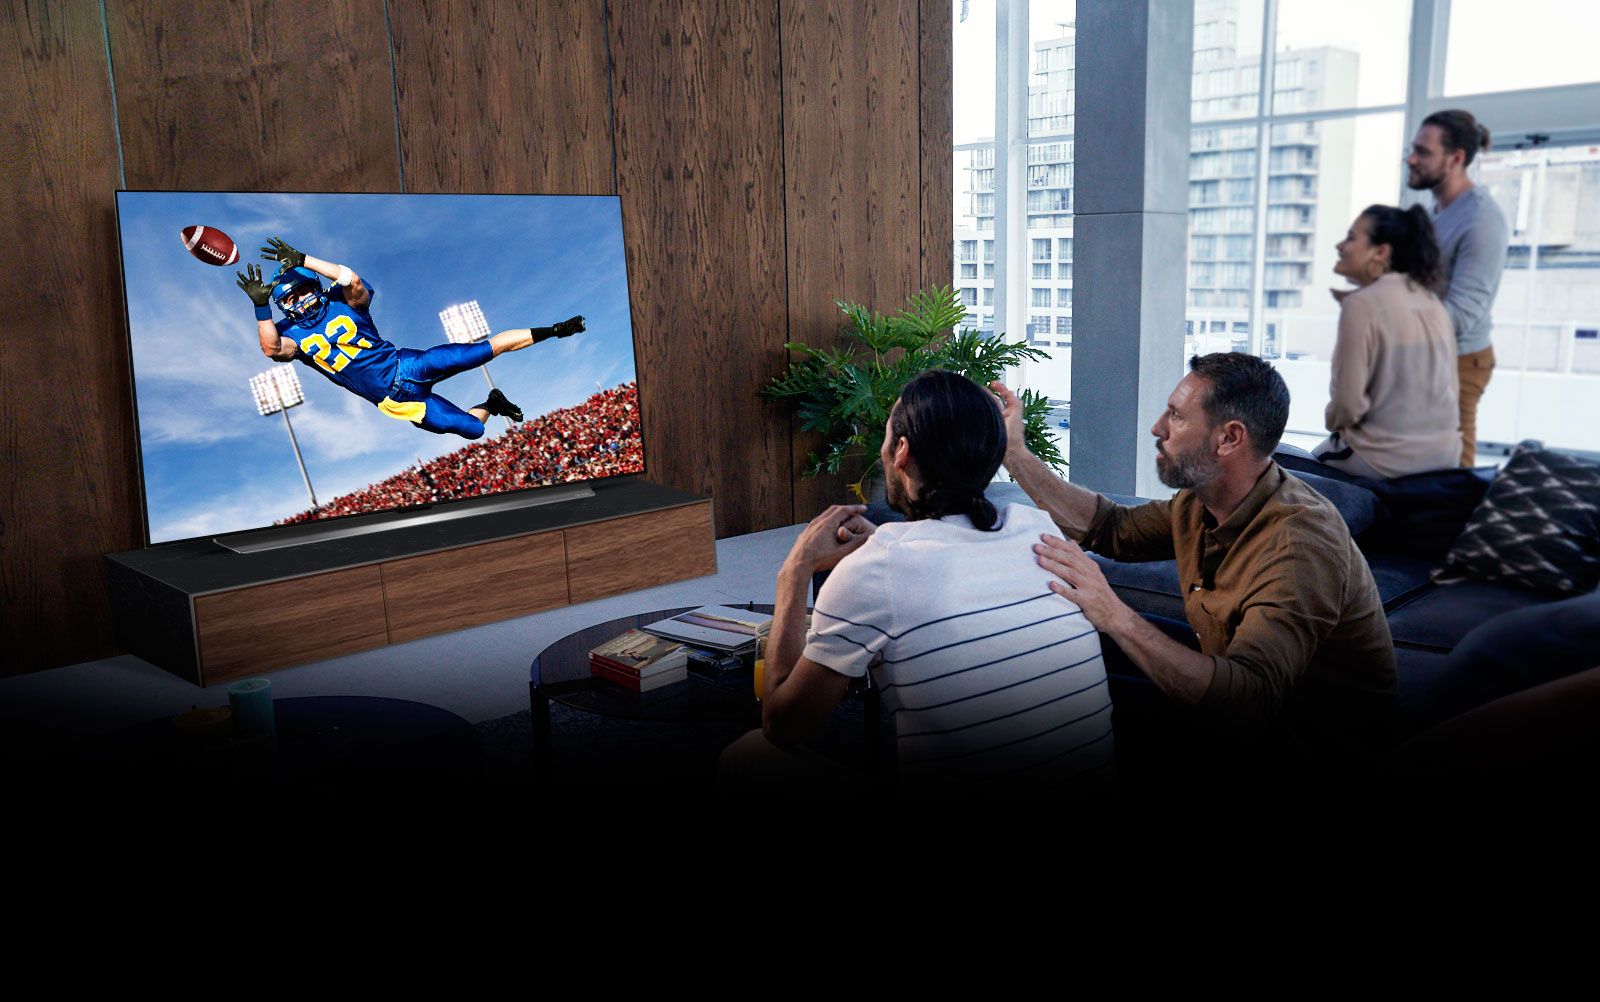 People watching a American football game on TV in the living room